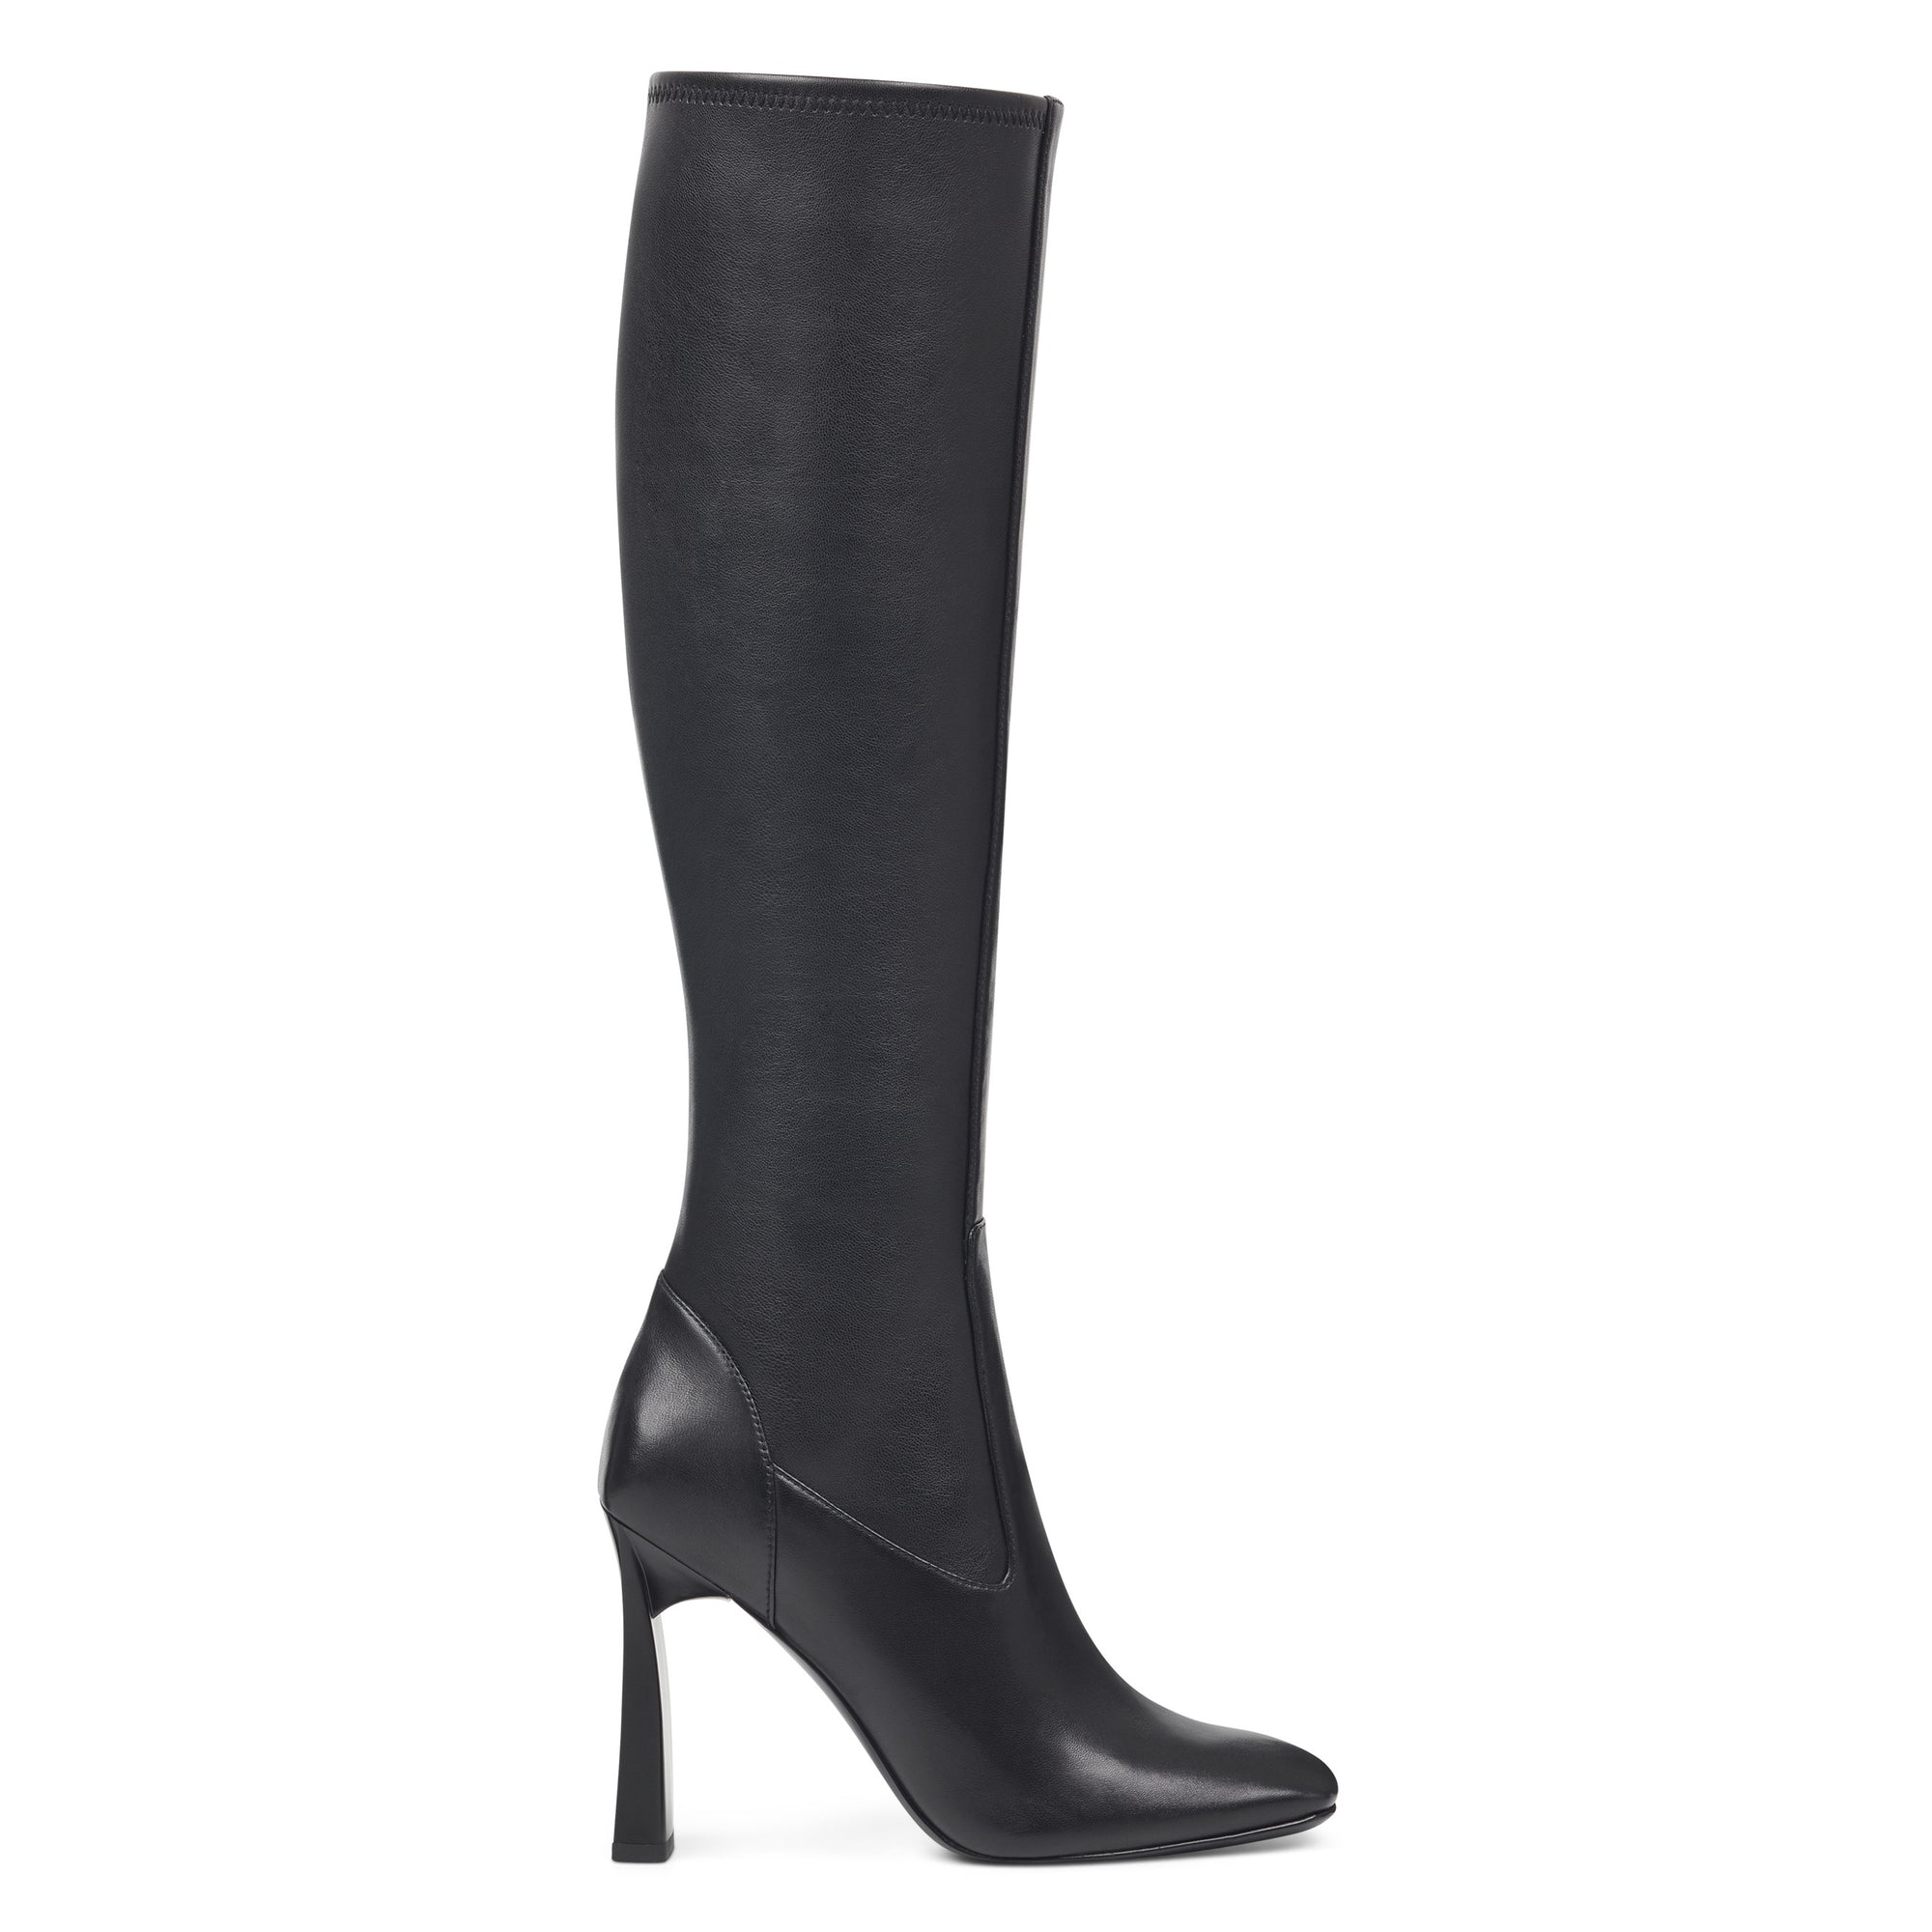 Nine West Women's Quincy Square Toe Leather Boots